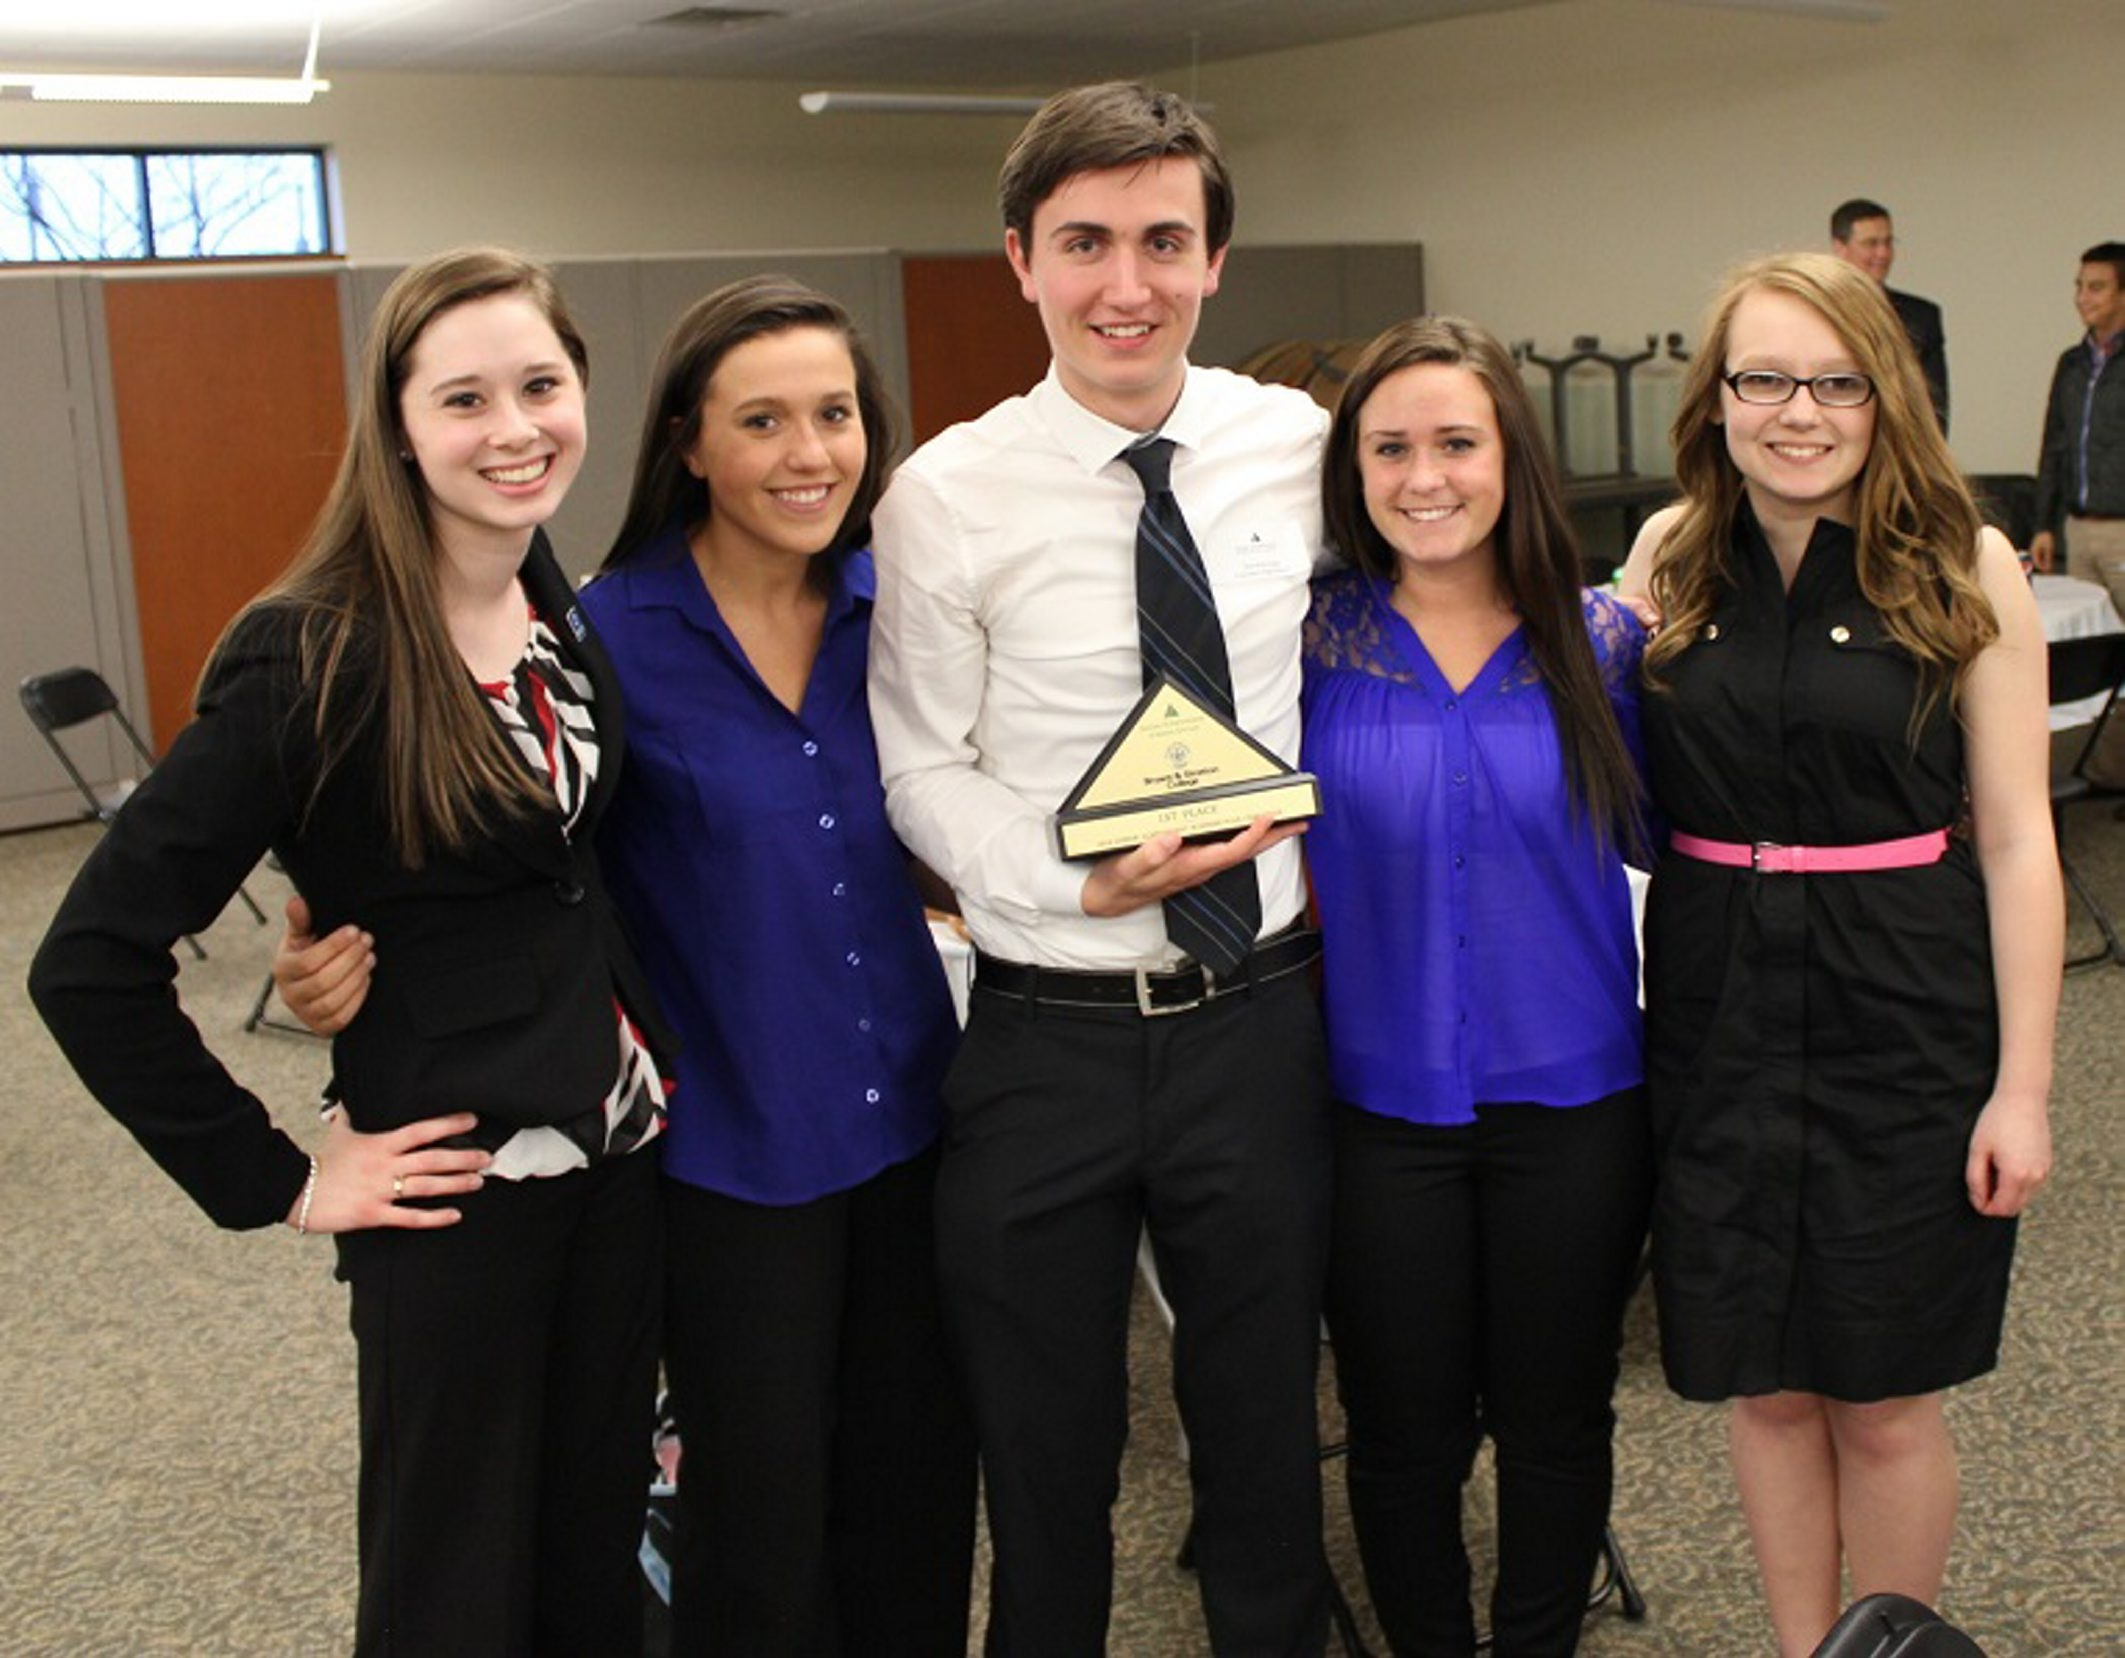 The winner of the Junior Achievement Business Plan Challenge, Nathan Riexinger, of Lancaster High School, is pictured at left with Sarah Collins, Sarah Johnson, Kaylie Bauer and Angelic Burg, all of Lancaster High School. In center photo is Danielle Arnold and Megan Krebs, of Pembroke High School. And, at right, is Grace Herman, of Lockport High School.